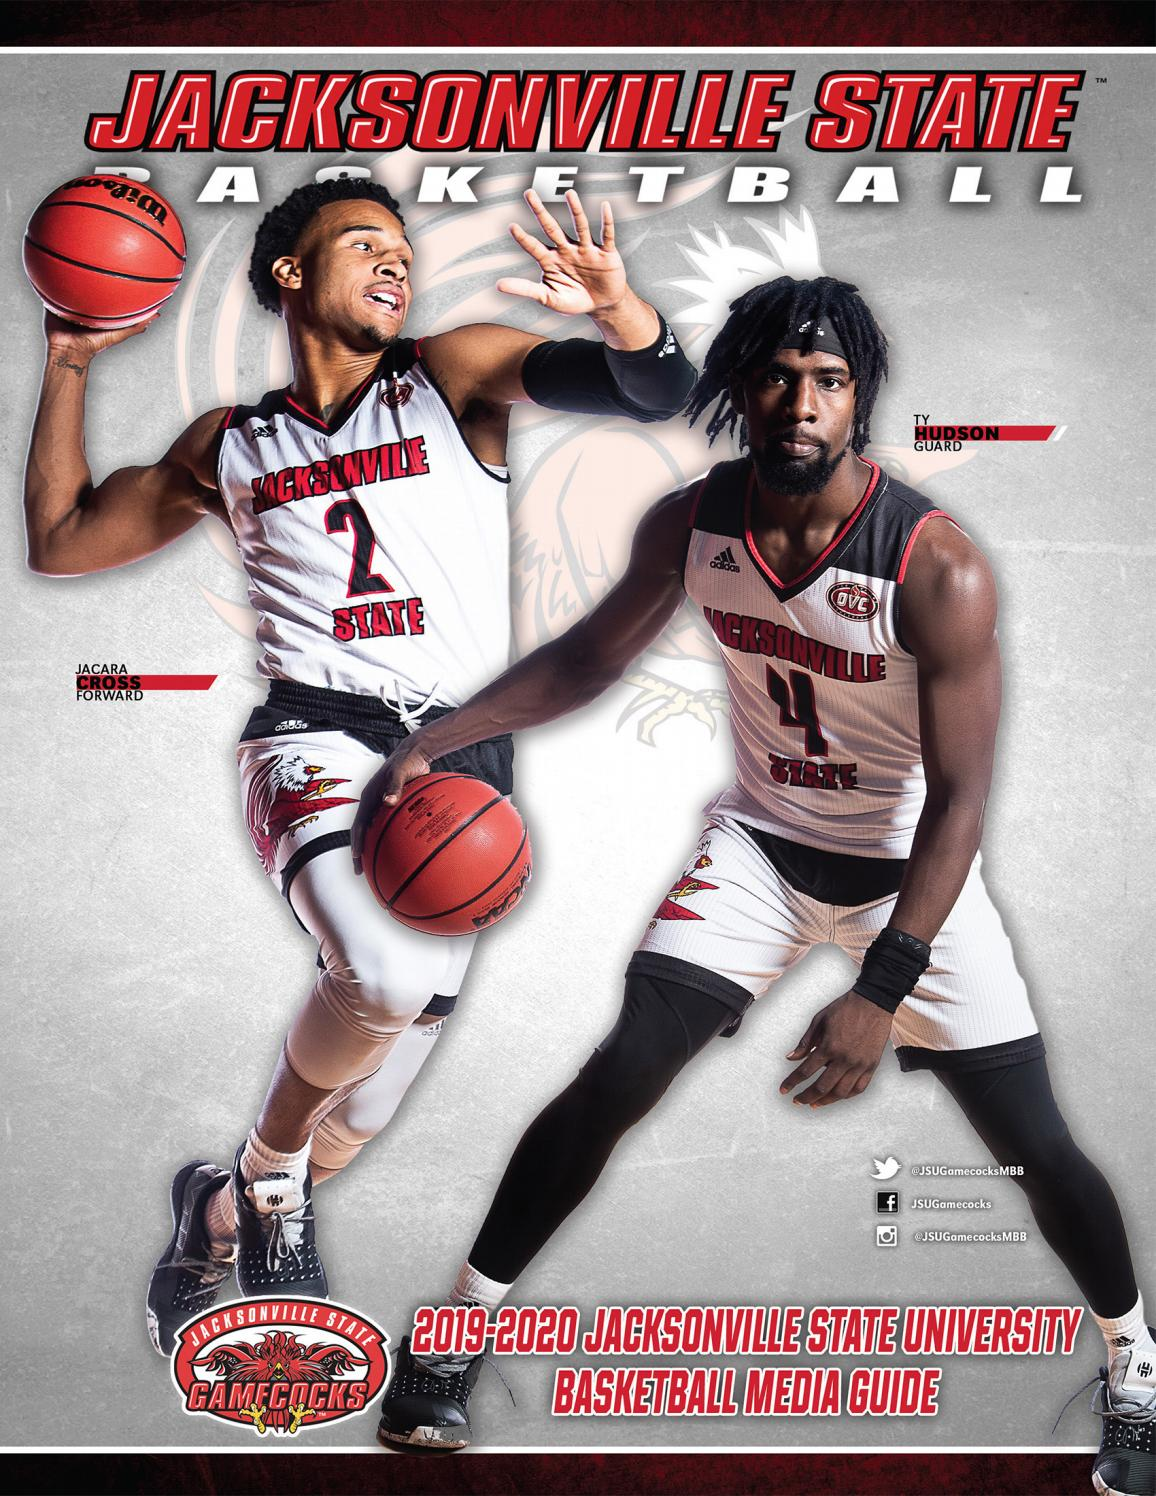 2019 20 Jacksonville State Men S Basketball Media Guide By Jacksonville State Athletics Issuu